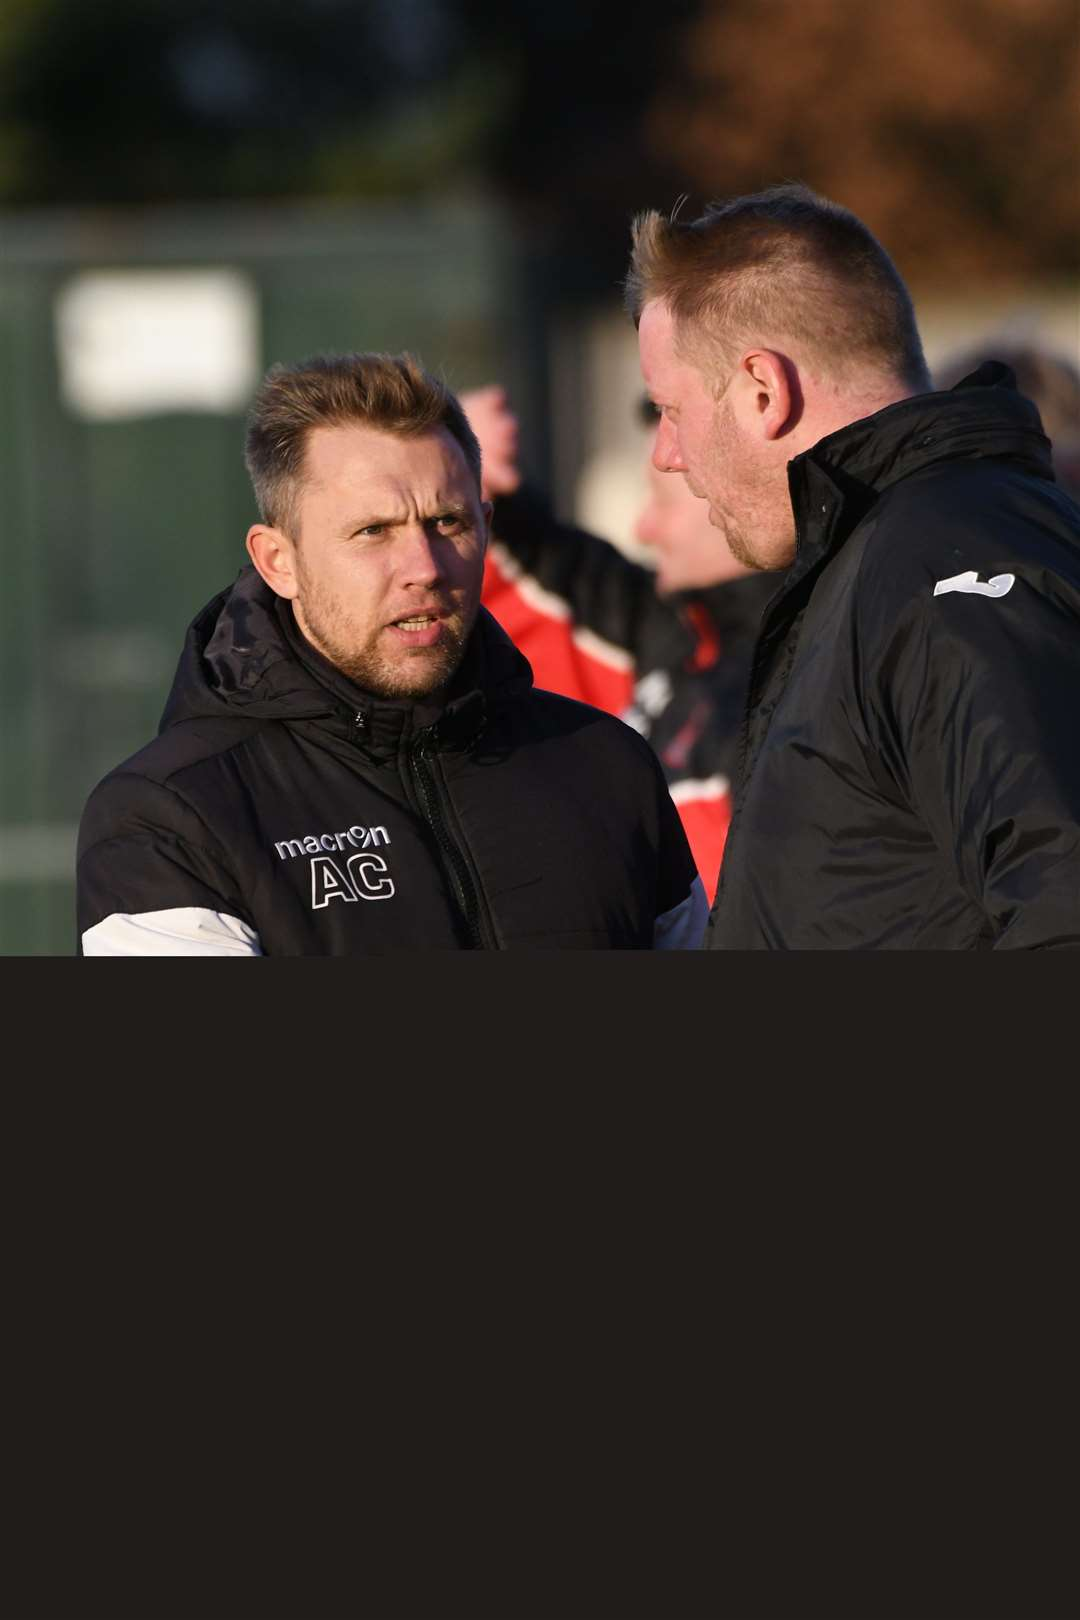 Fakenham Town v Histon....Andy Cunningham new manager. (31495888)